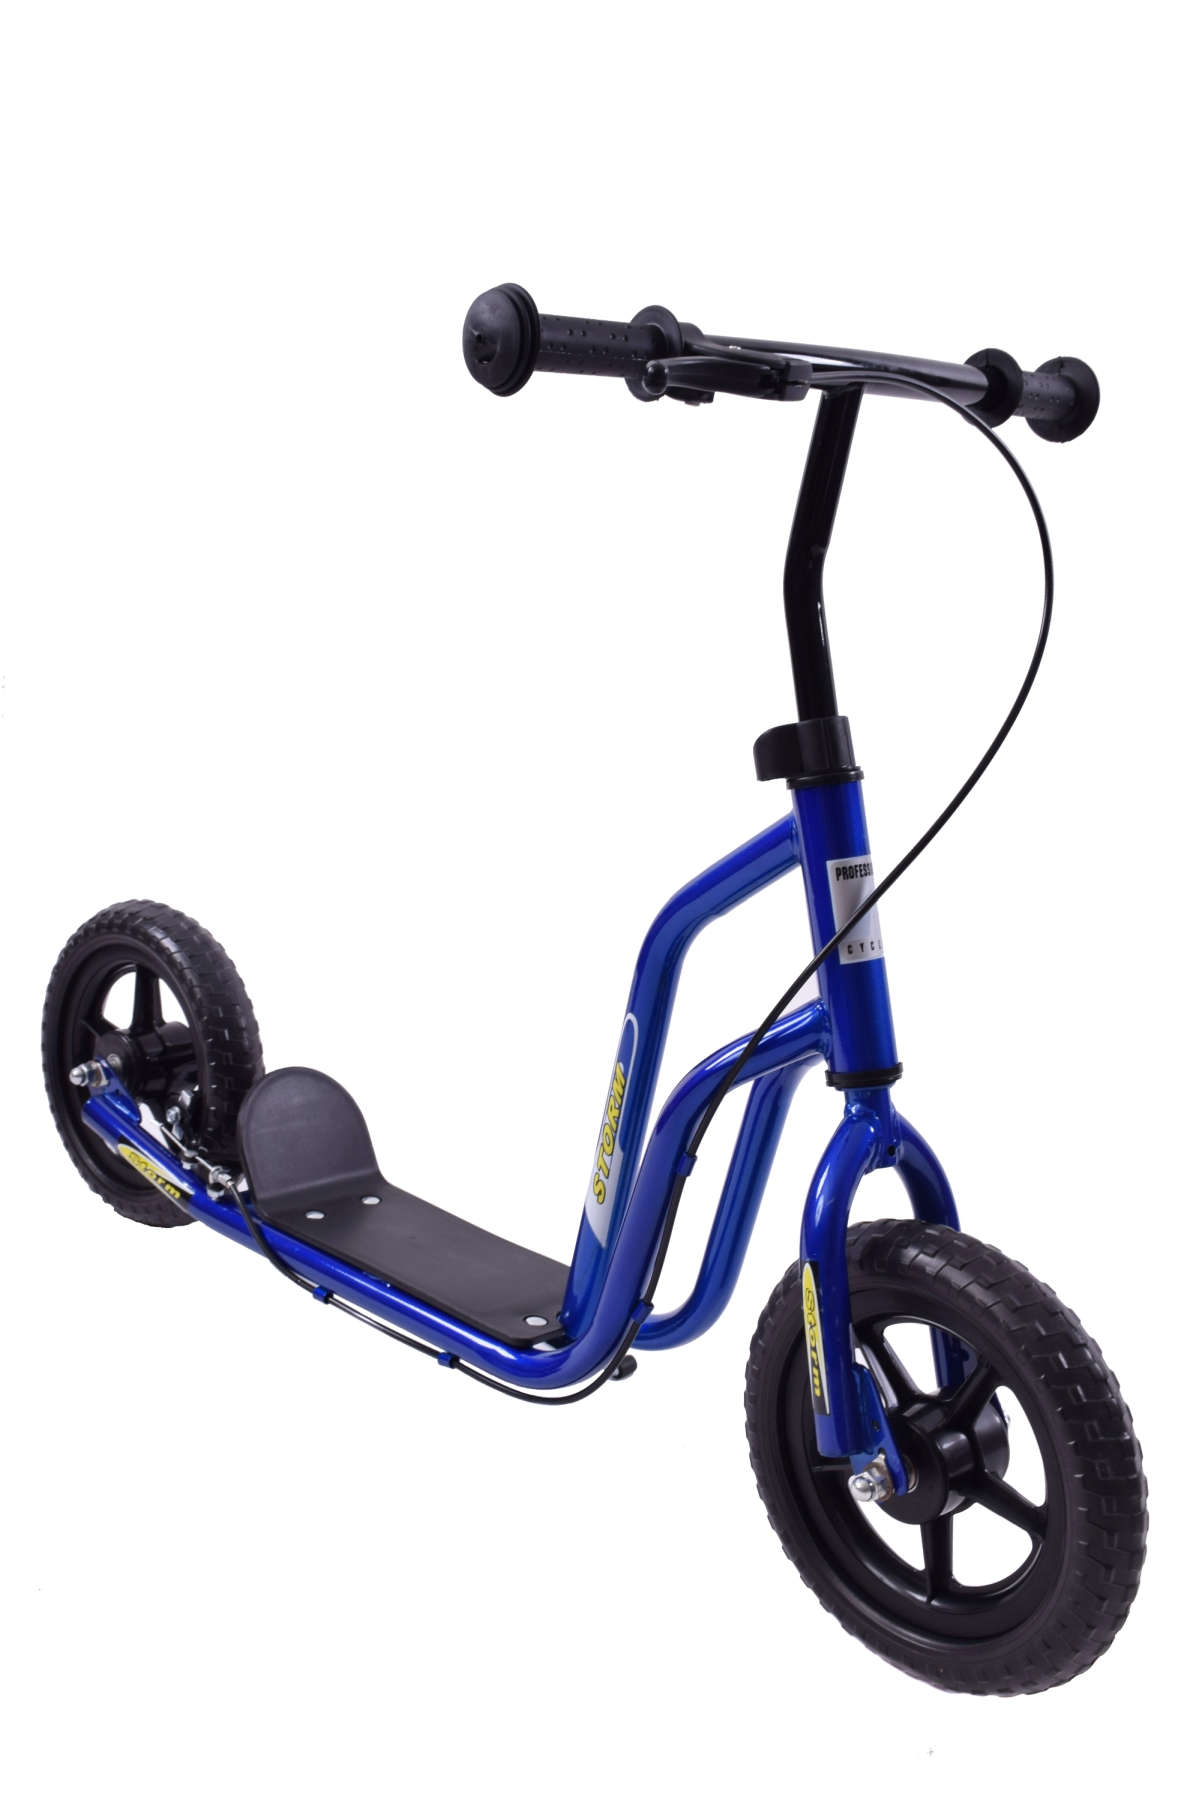 BikeBase Professional Scooter Storm 10' Wheel Boys  Blue 2017